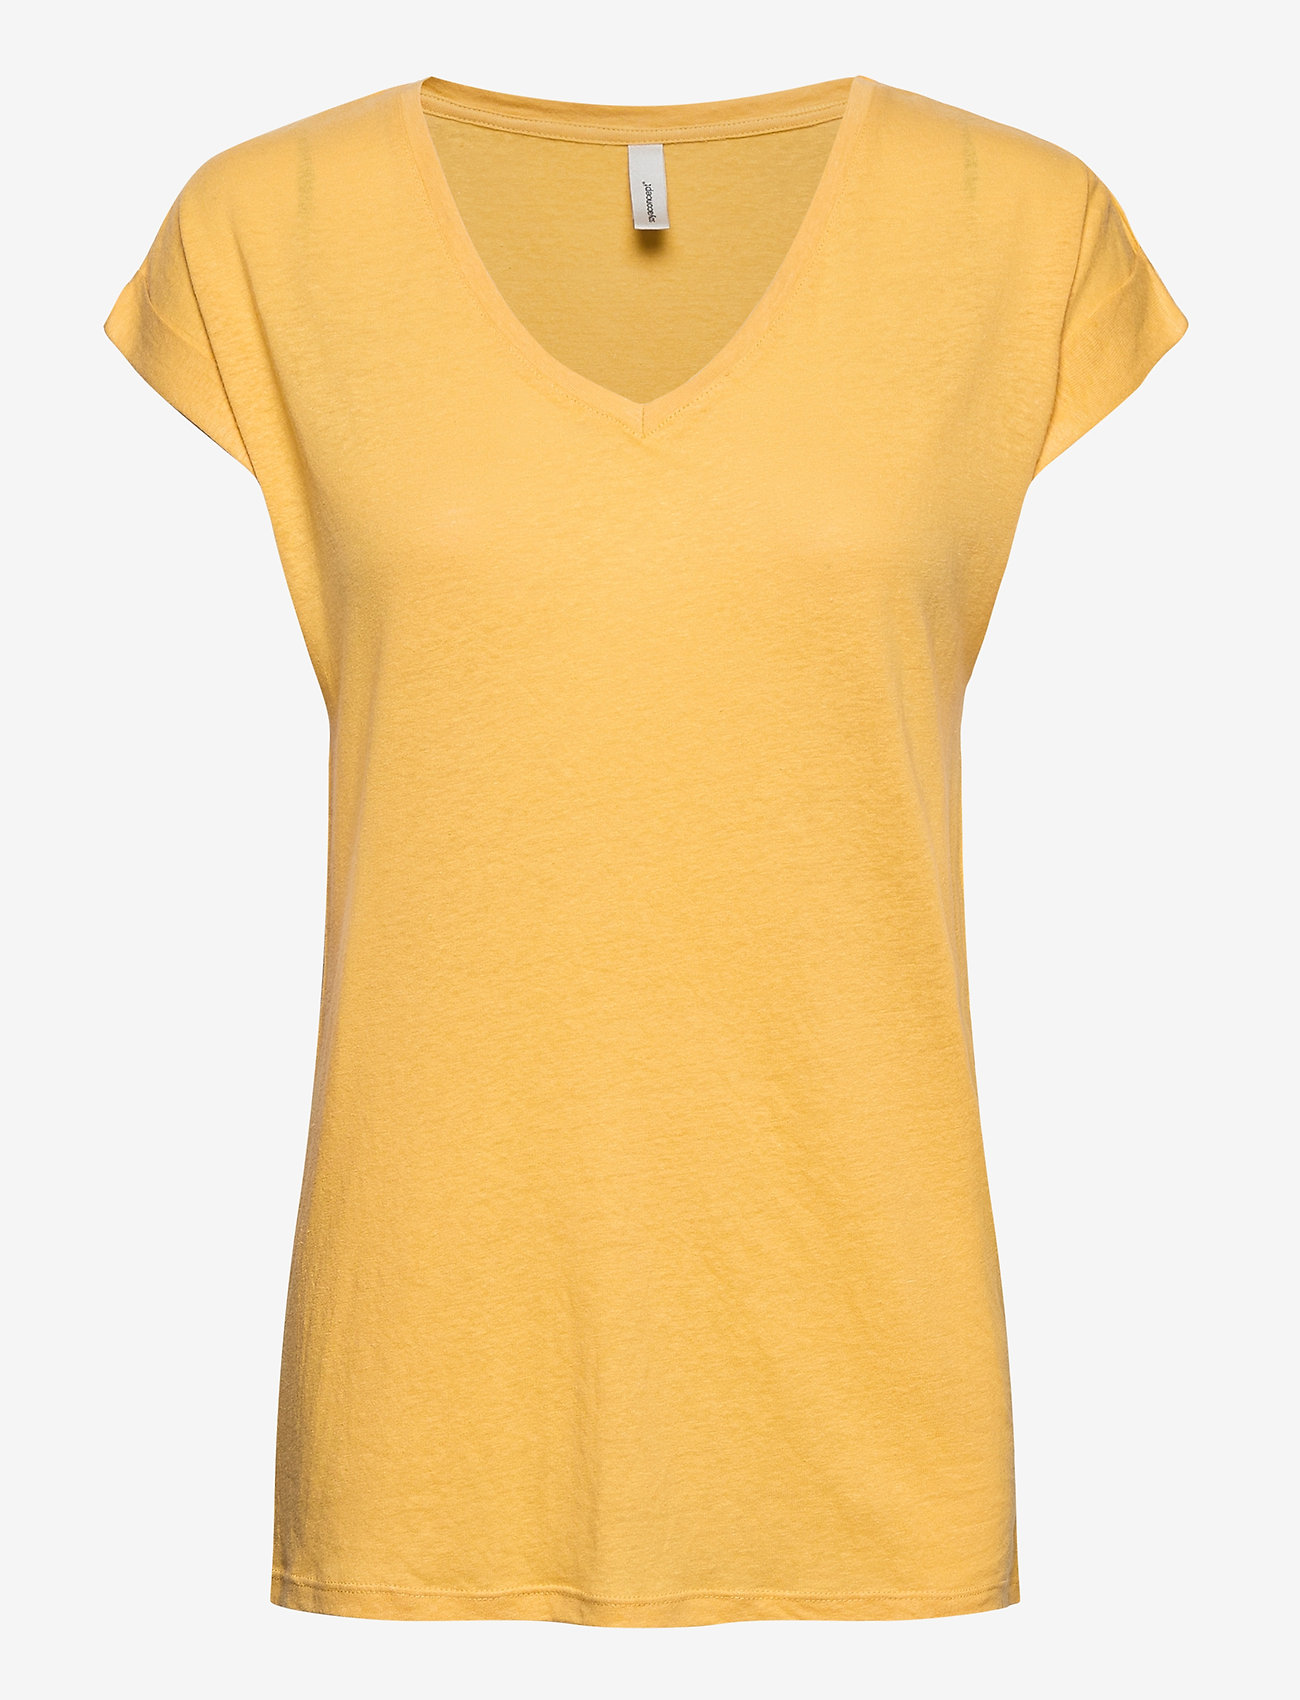 Soyaconcept - SC-ISABEL - t-shirts - yellow - 0